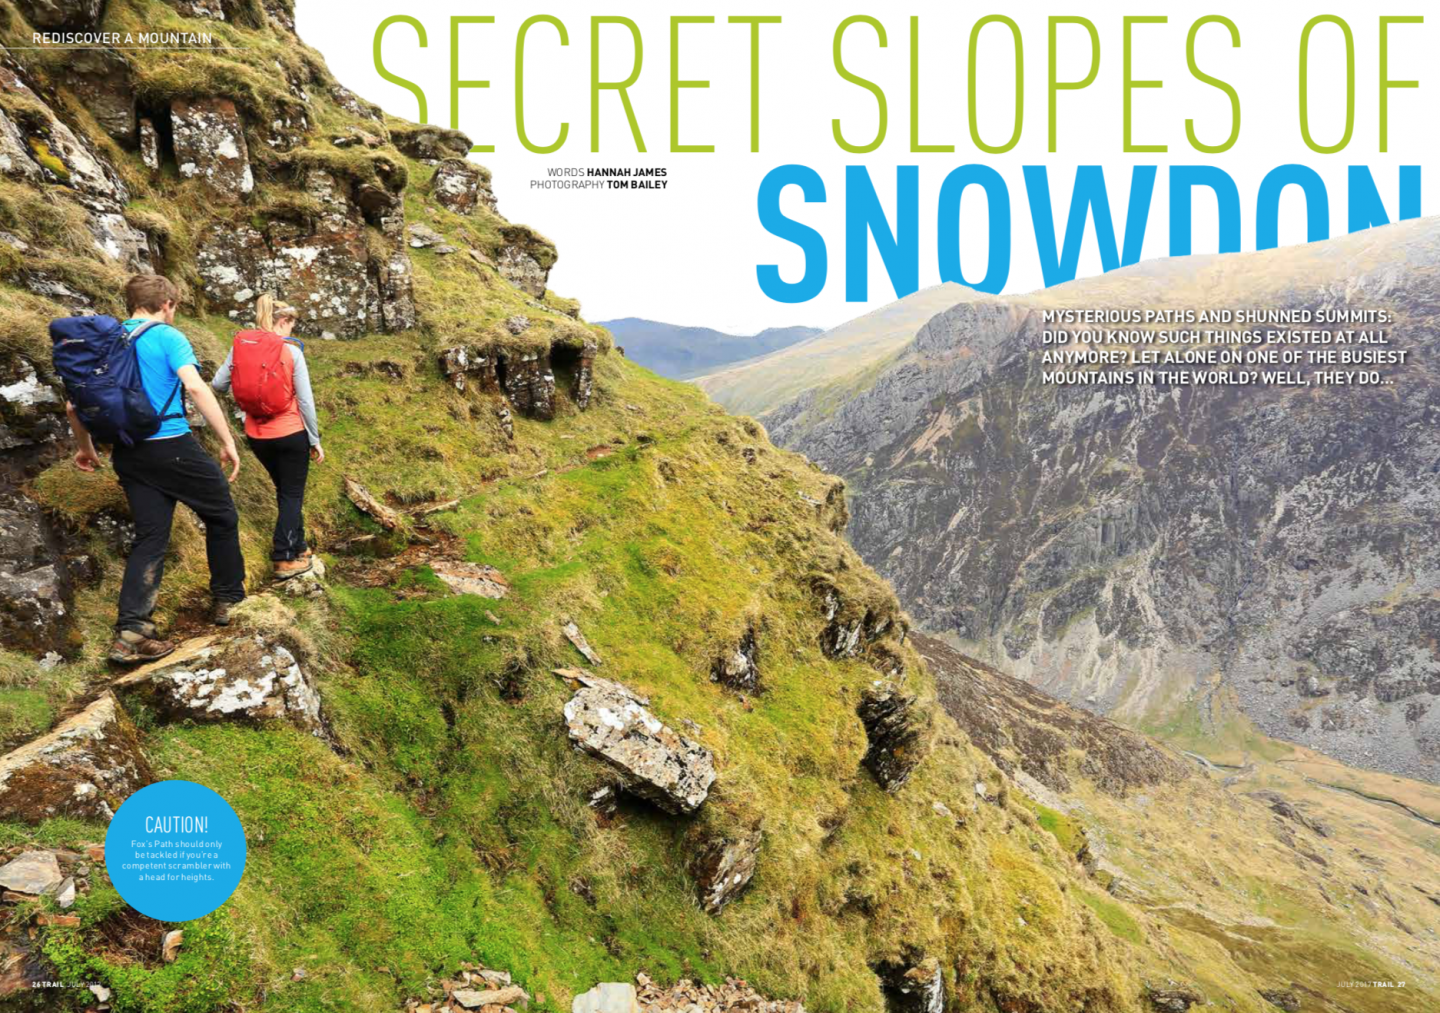 The Secret Slopes of Snowdon by Hannah James, Trail magazine